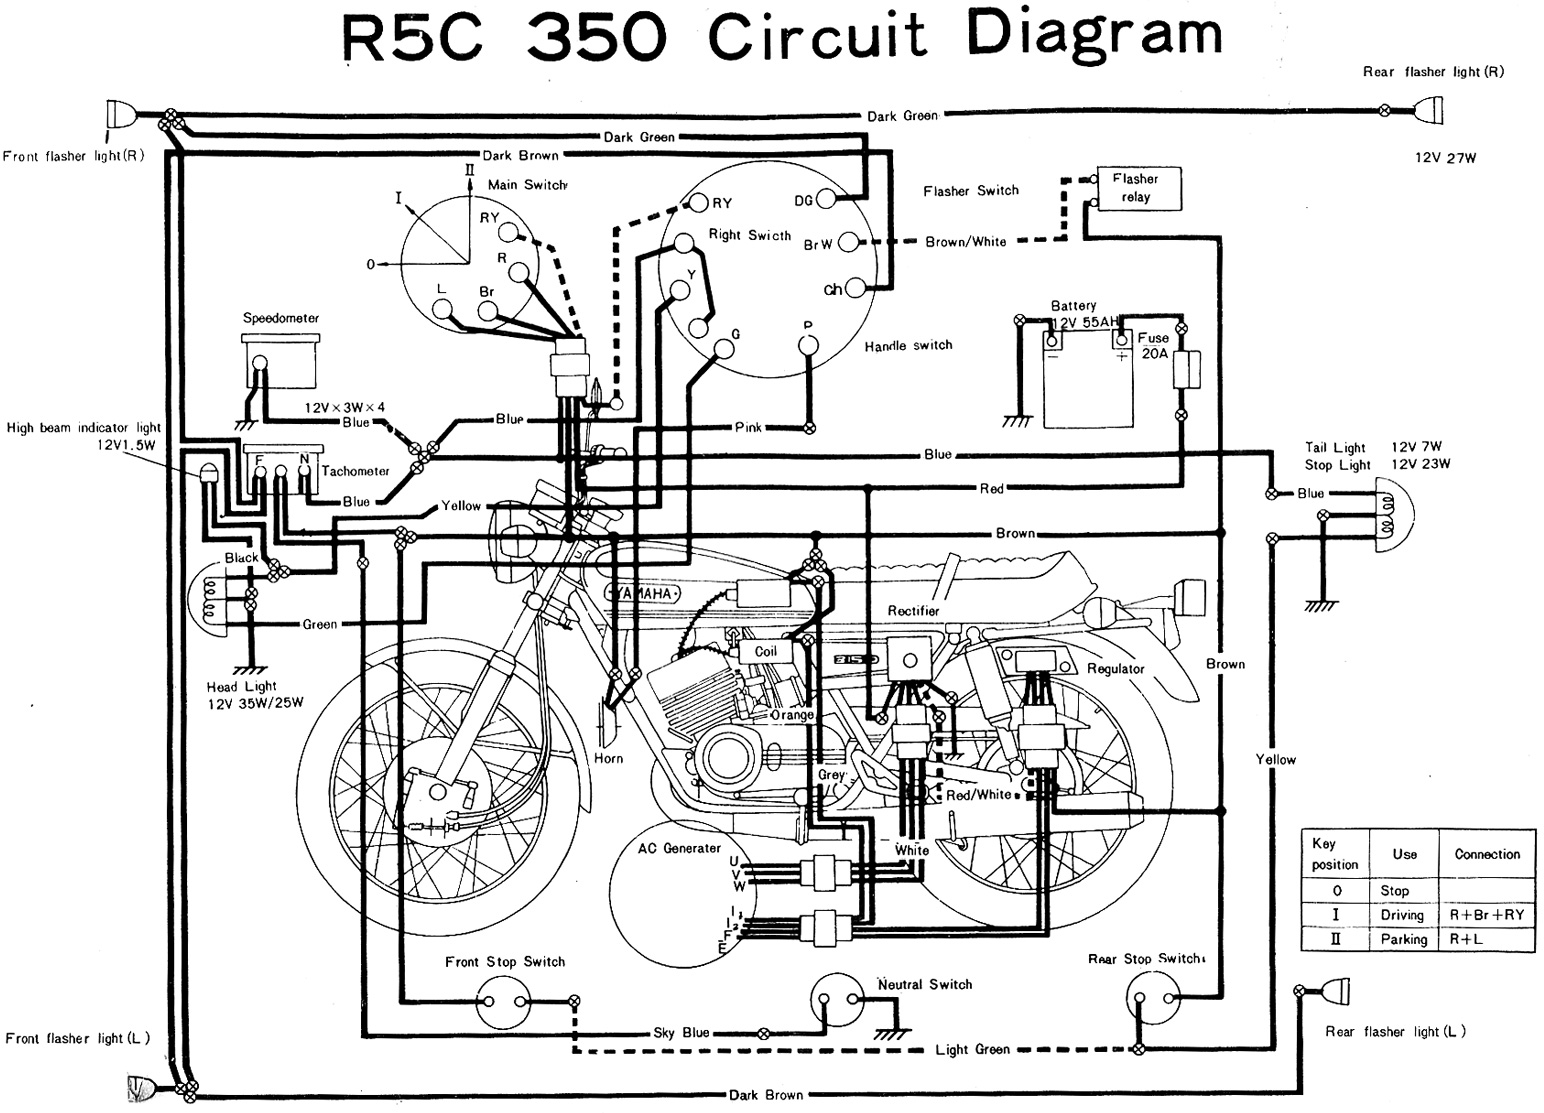 Yamaha RD350 R5C Wiring Diagram motorcycle wiring diagrams evan fell motorcycle worksevan fell Basic Motorcycle Diagram at sewacar.co